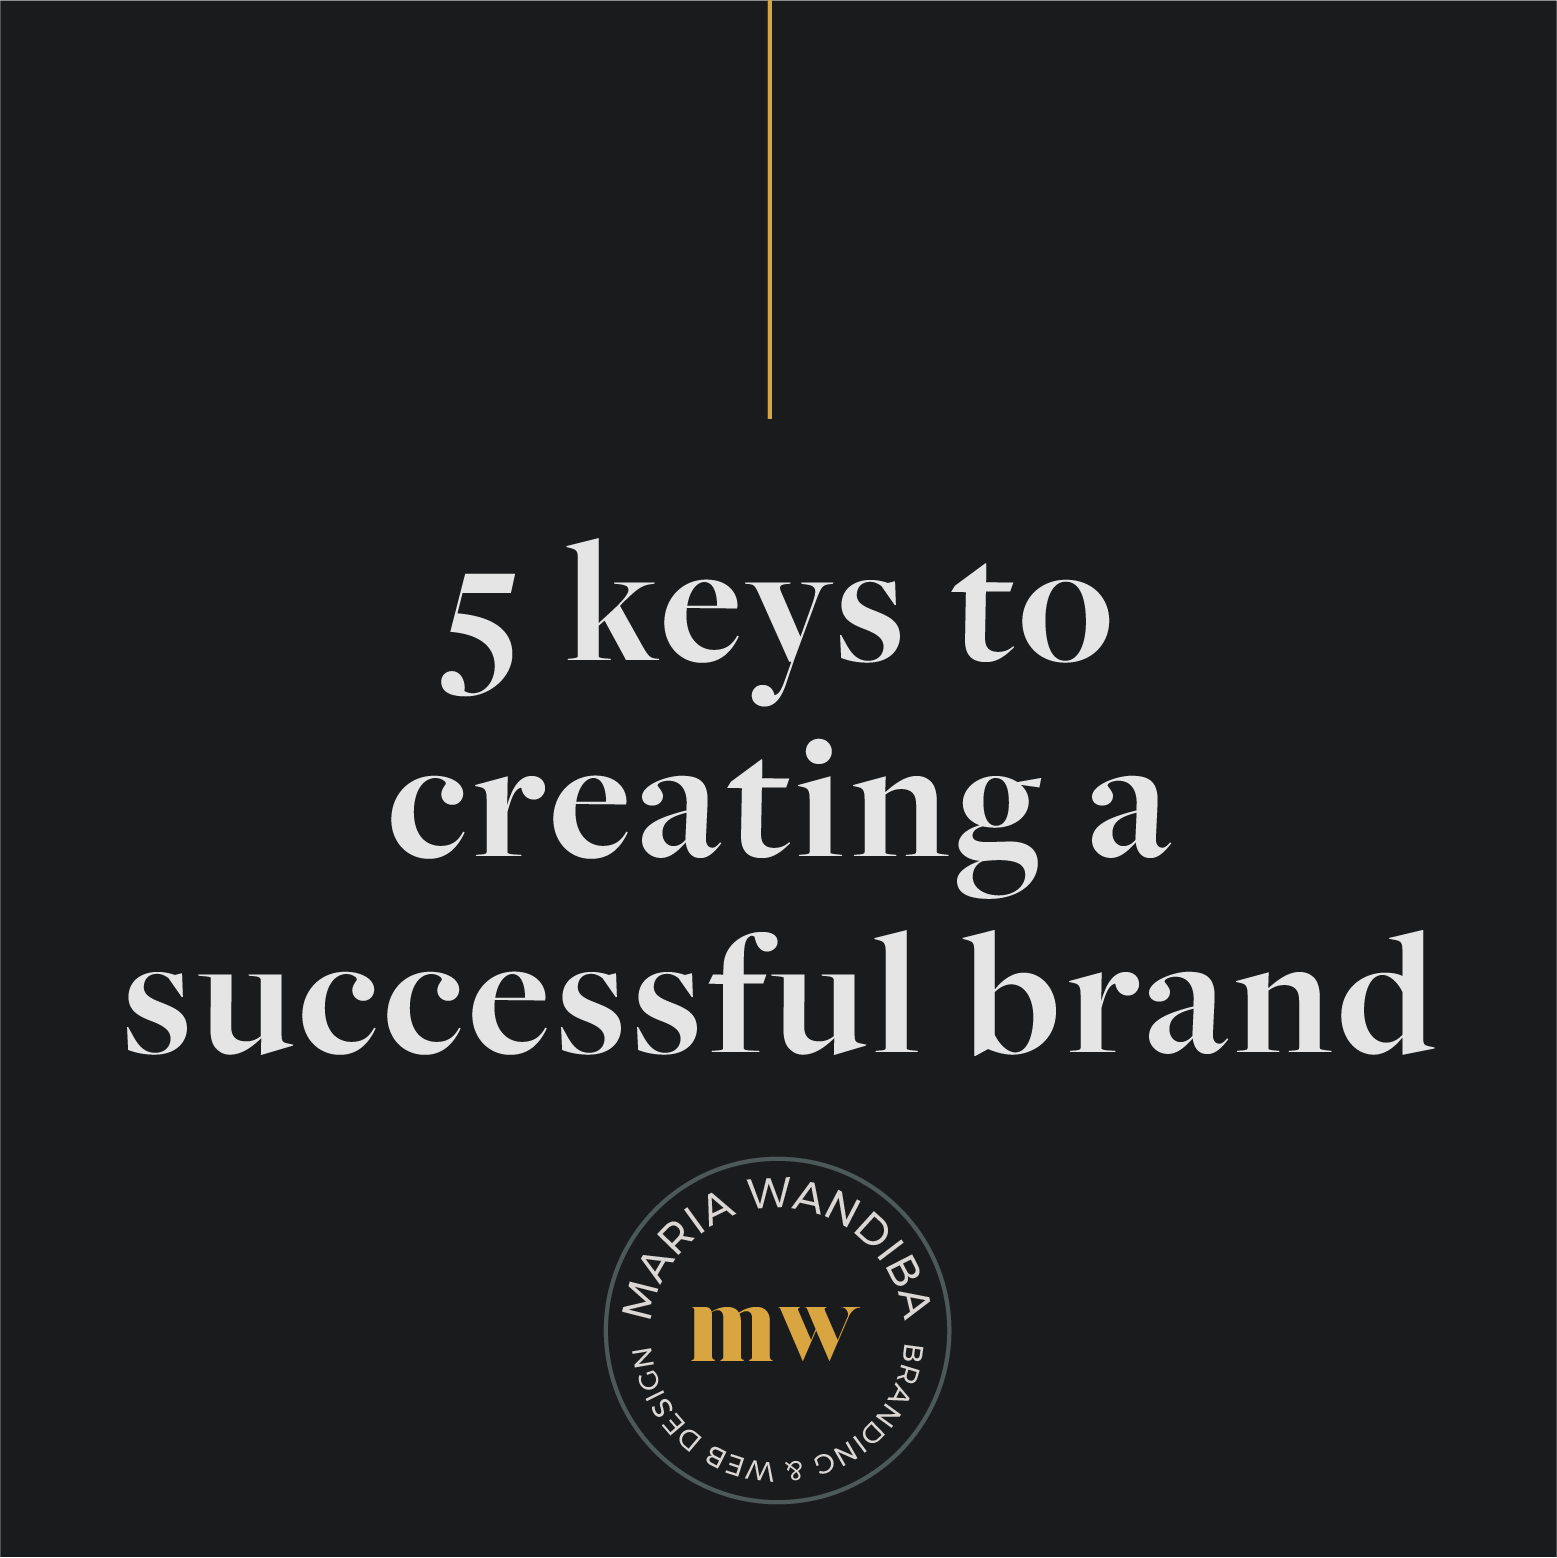 5 keys to creating a successful brand